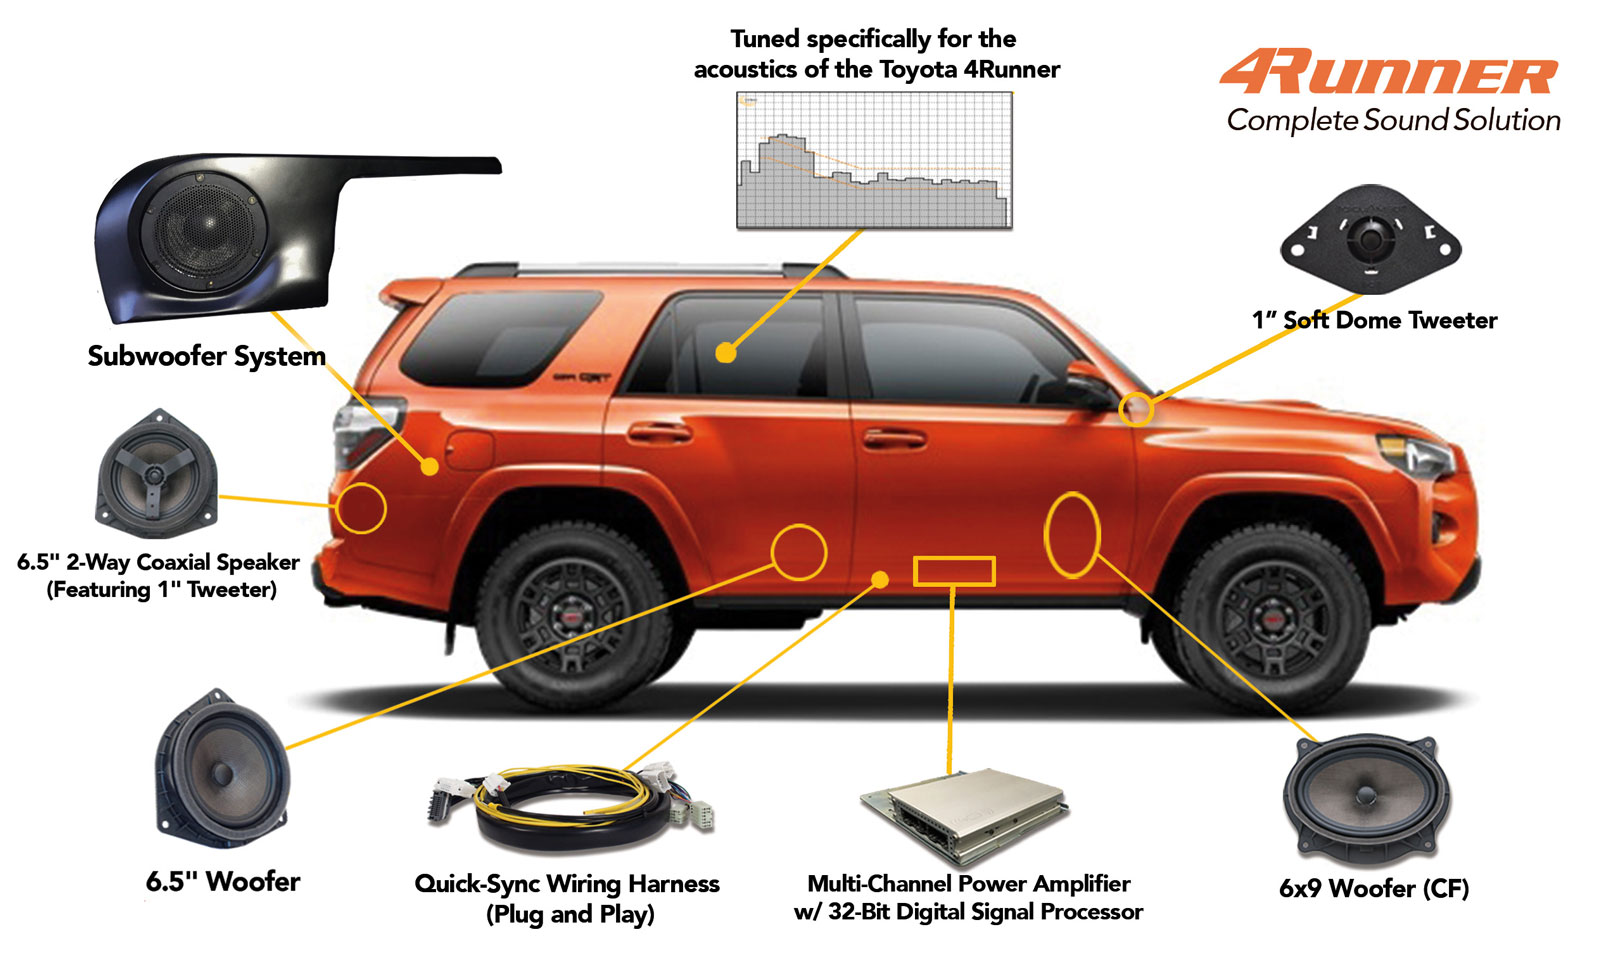 4runner Oem Audio Plus 2007 Toyota Wiring Diagram Engineered Specifically To Perform Together